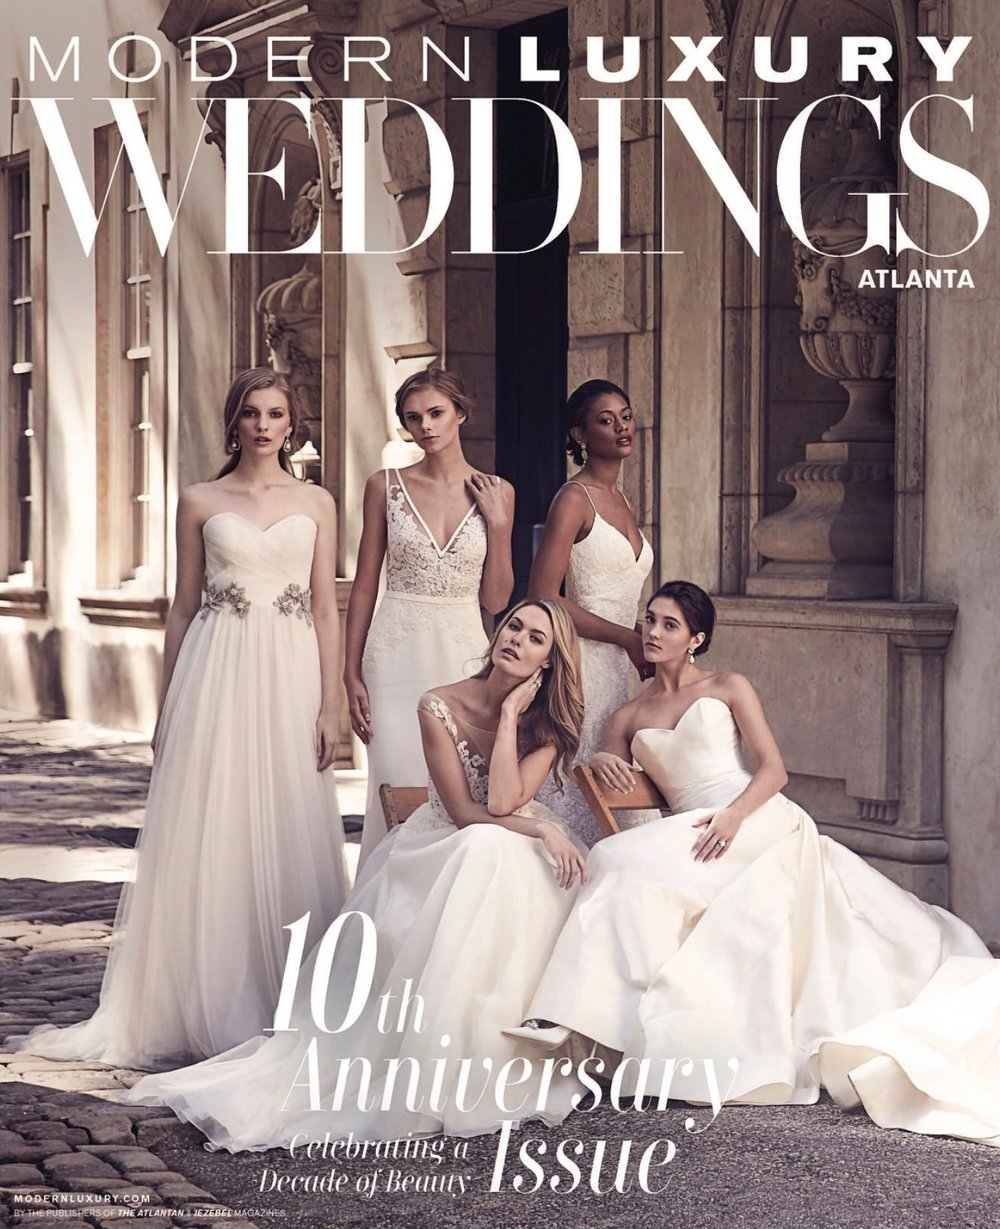 Messieurs Swank Featured as Top 10 Entertainment Company for Modern Luxury Weddings Atlanta 10th Anniversary Edition -